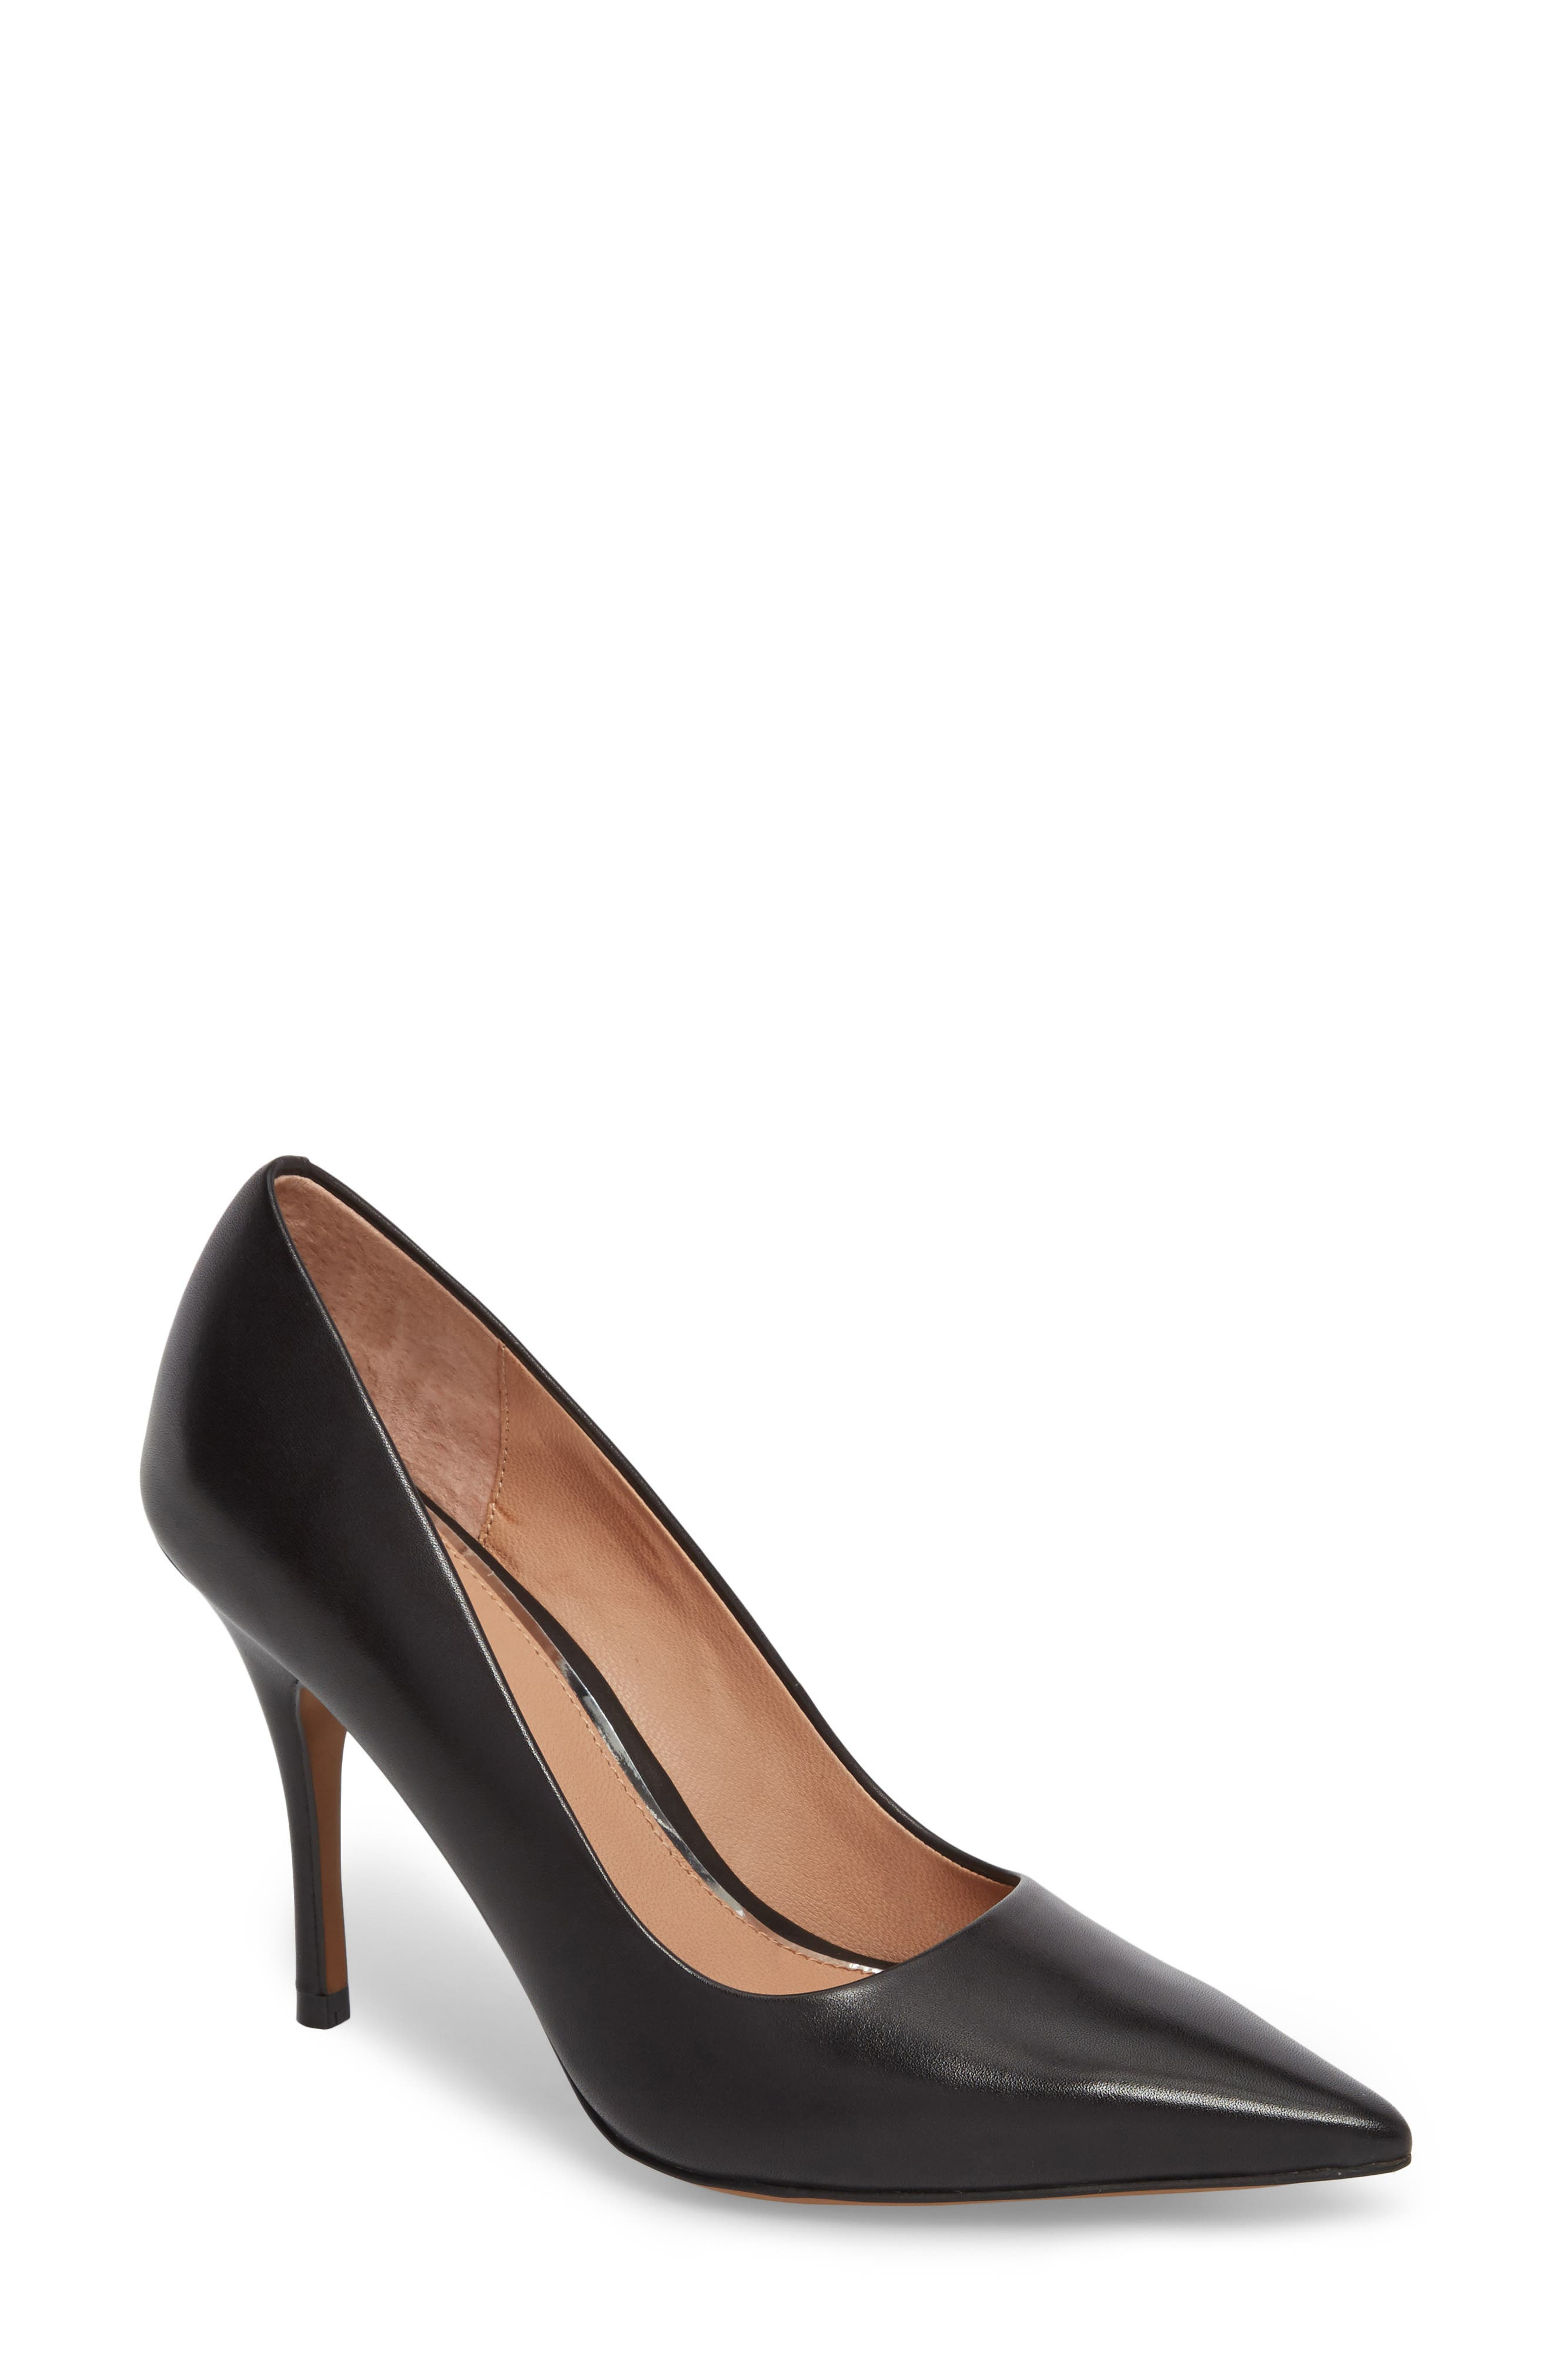 Payton Pointy Toe Pump,                         Main,                         color, BLACK LEATHER